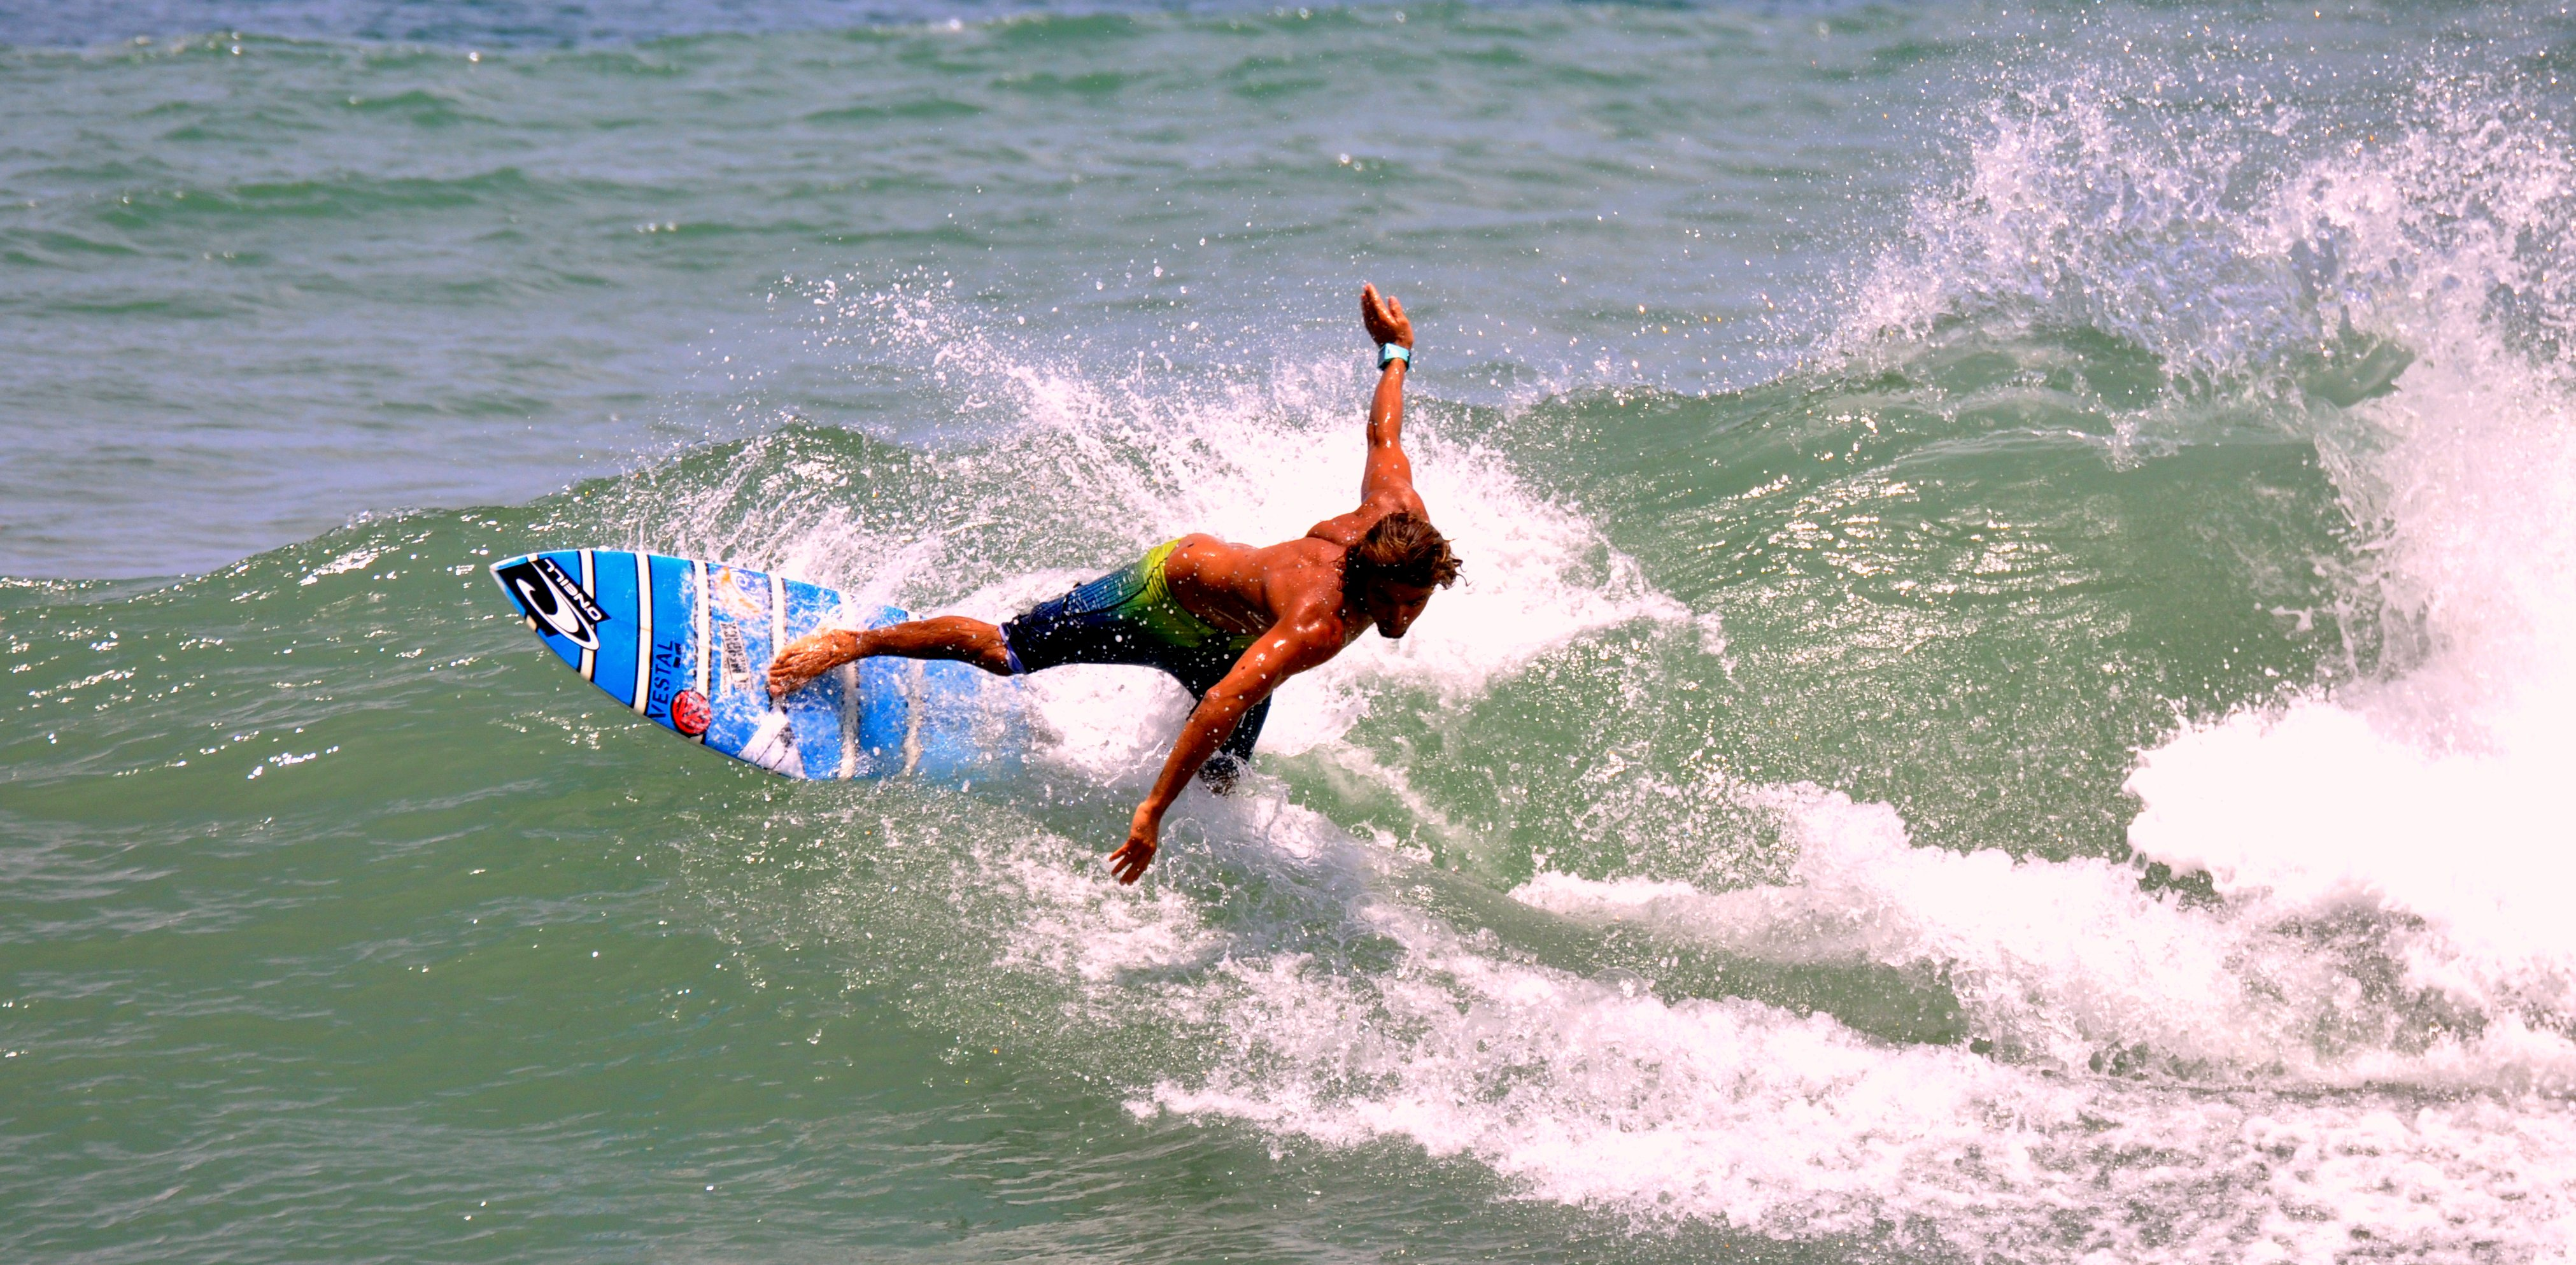 costa rica picture of the day backyard surf contest in playa hermosa